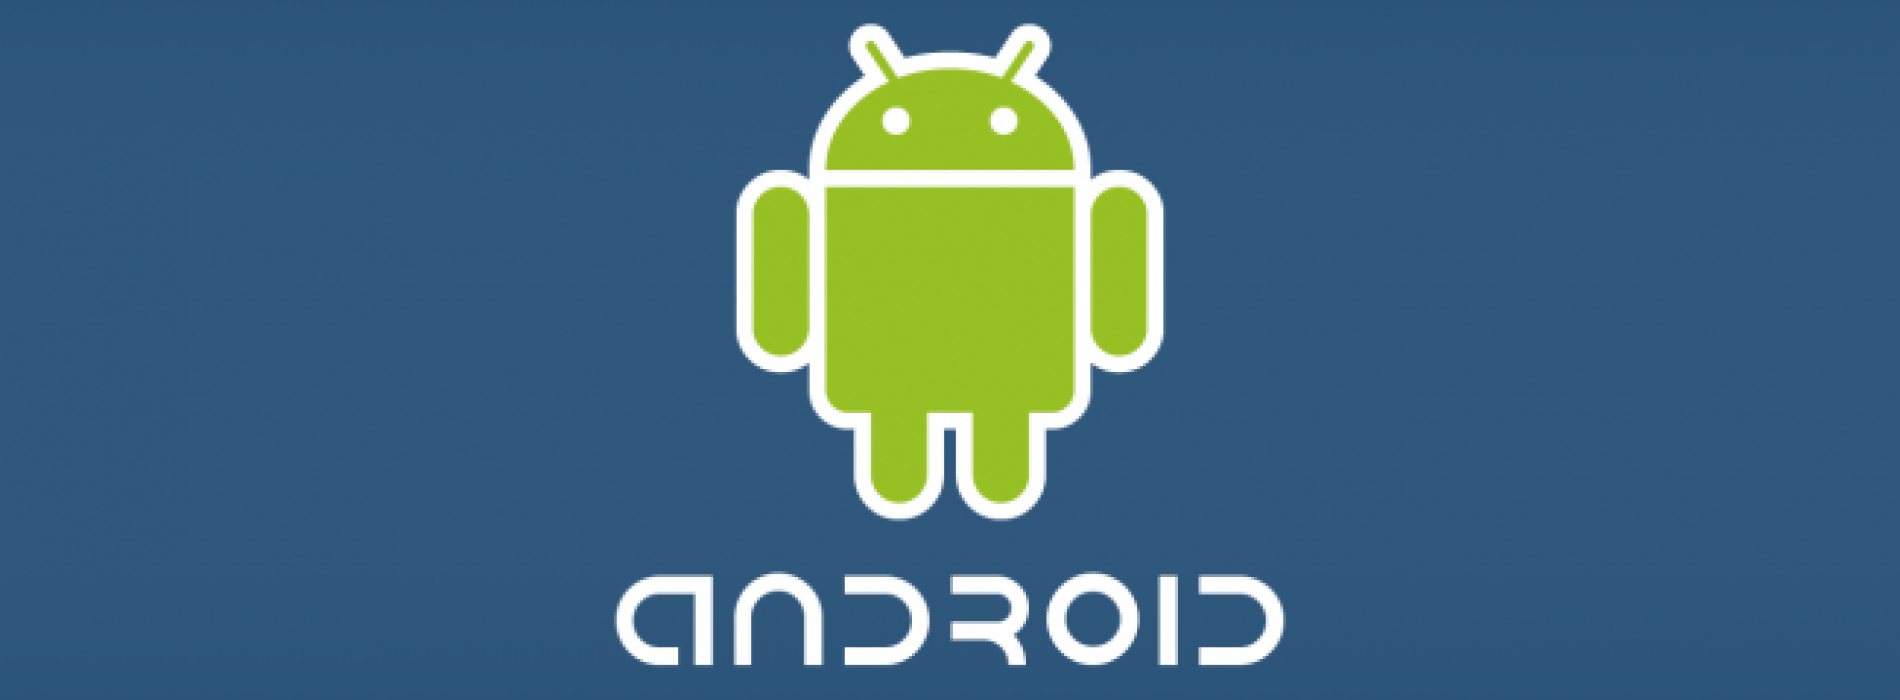 Android 4.3 accidentally confirmed by Google developer site